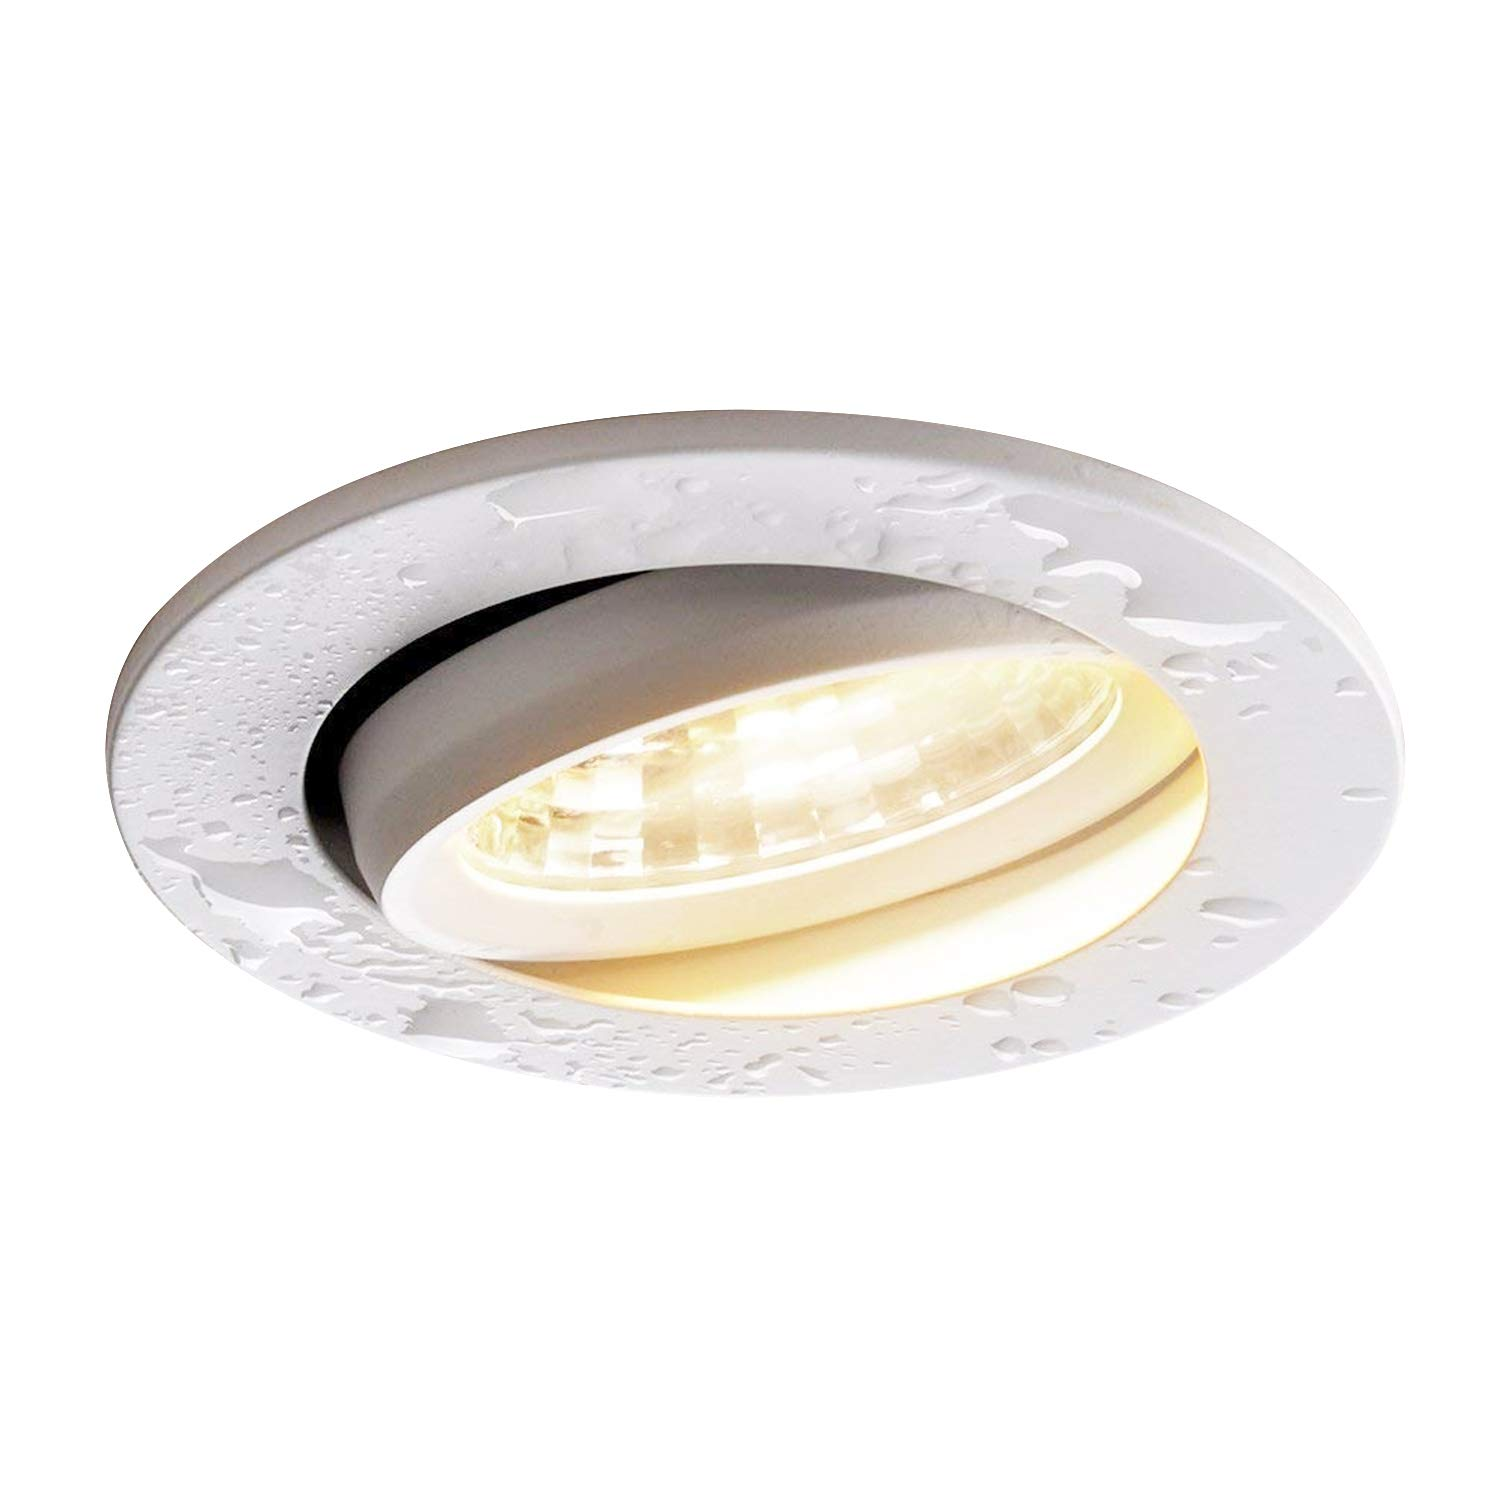 Obsess Dimmable Recessed Ceiling Down Light for Wet Location,Rotatable,with Junction Box,Specially Fixture Lighting for Bathroom, Shower Room, Kitchen-3 Inches-8W COB LED (3000k (Soft White Glow))